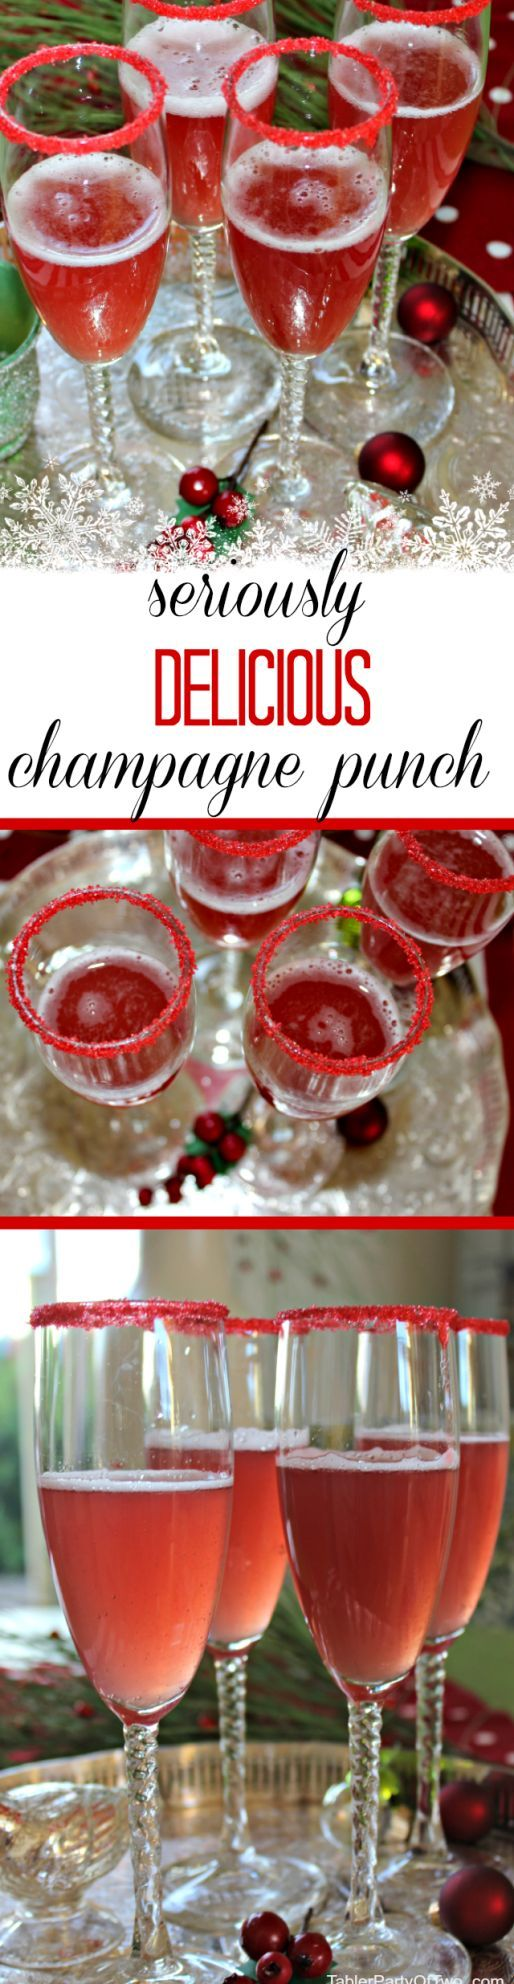 Seriously Delicious Holiday Champagne Punch Champagne Punch Christmas Drinks Holiday Drinks